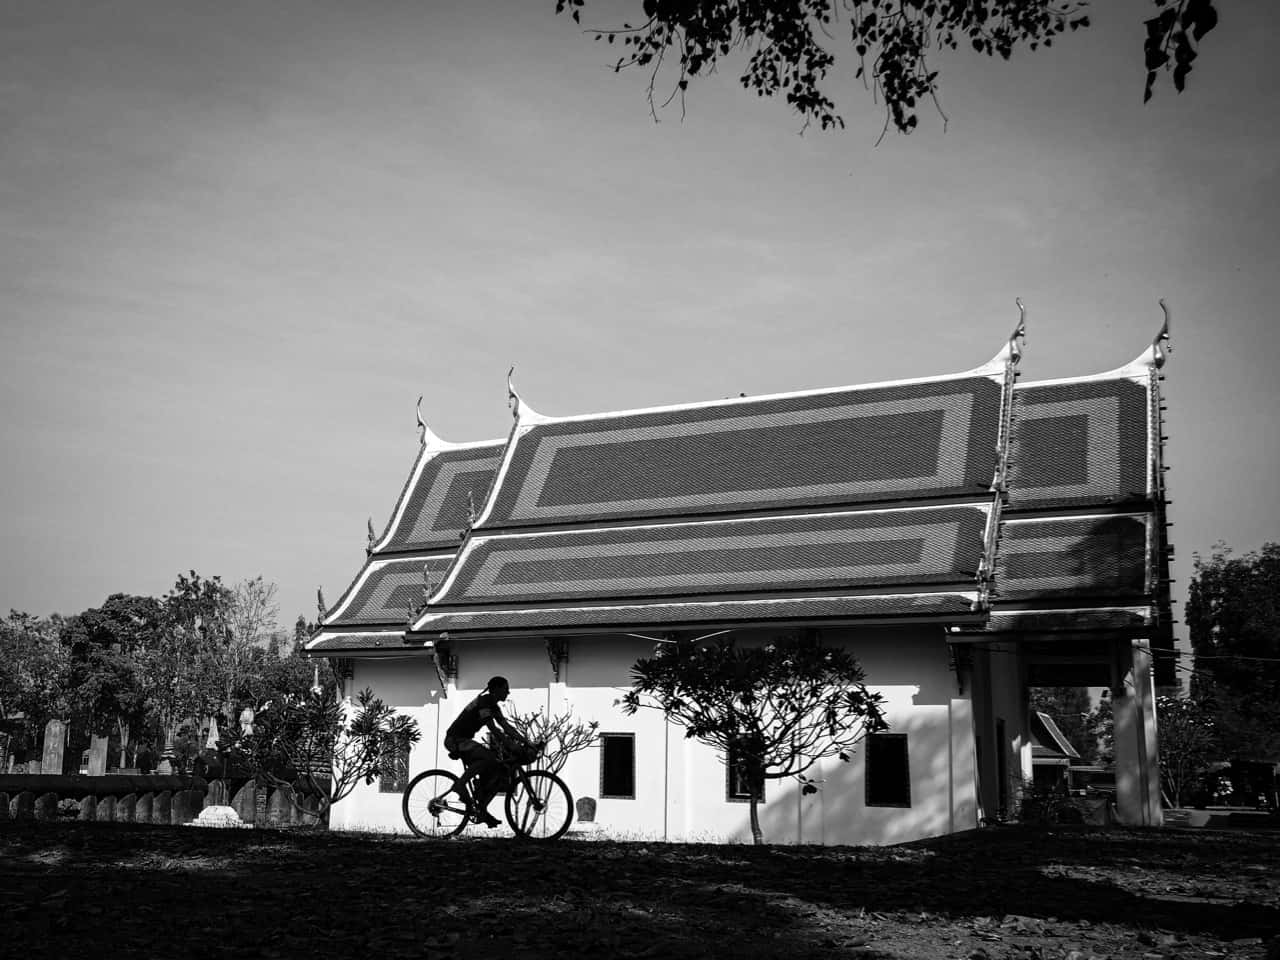 gravel cyclists passing old temple in Thailand black and white image